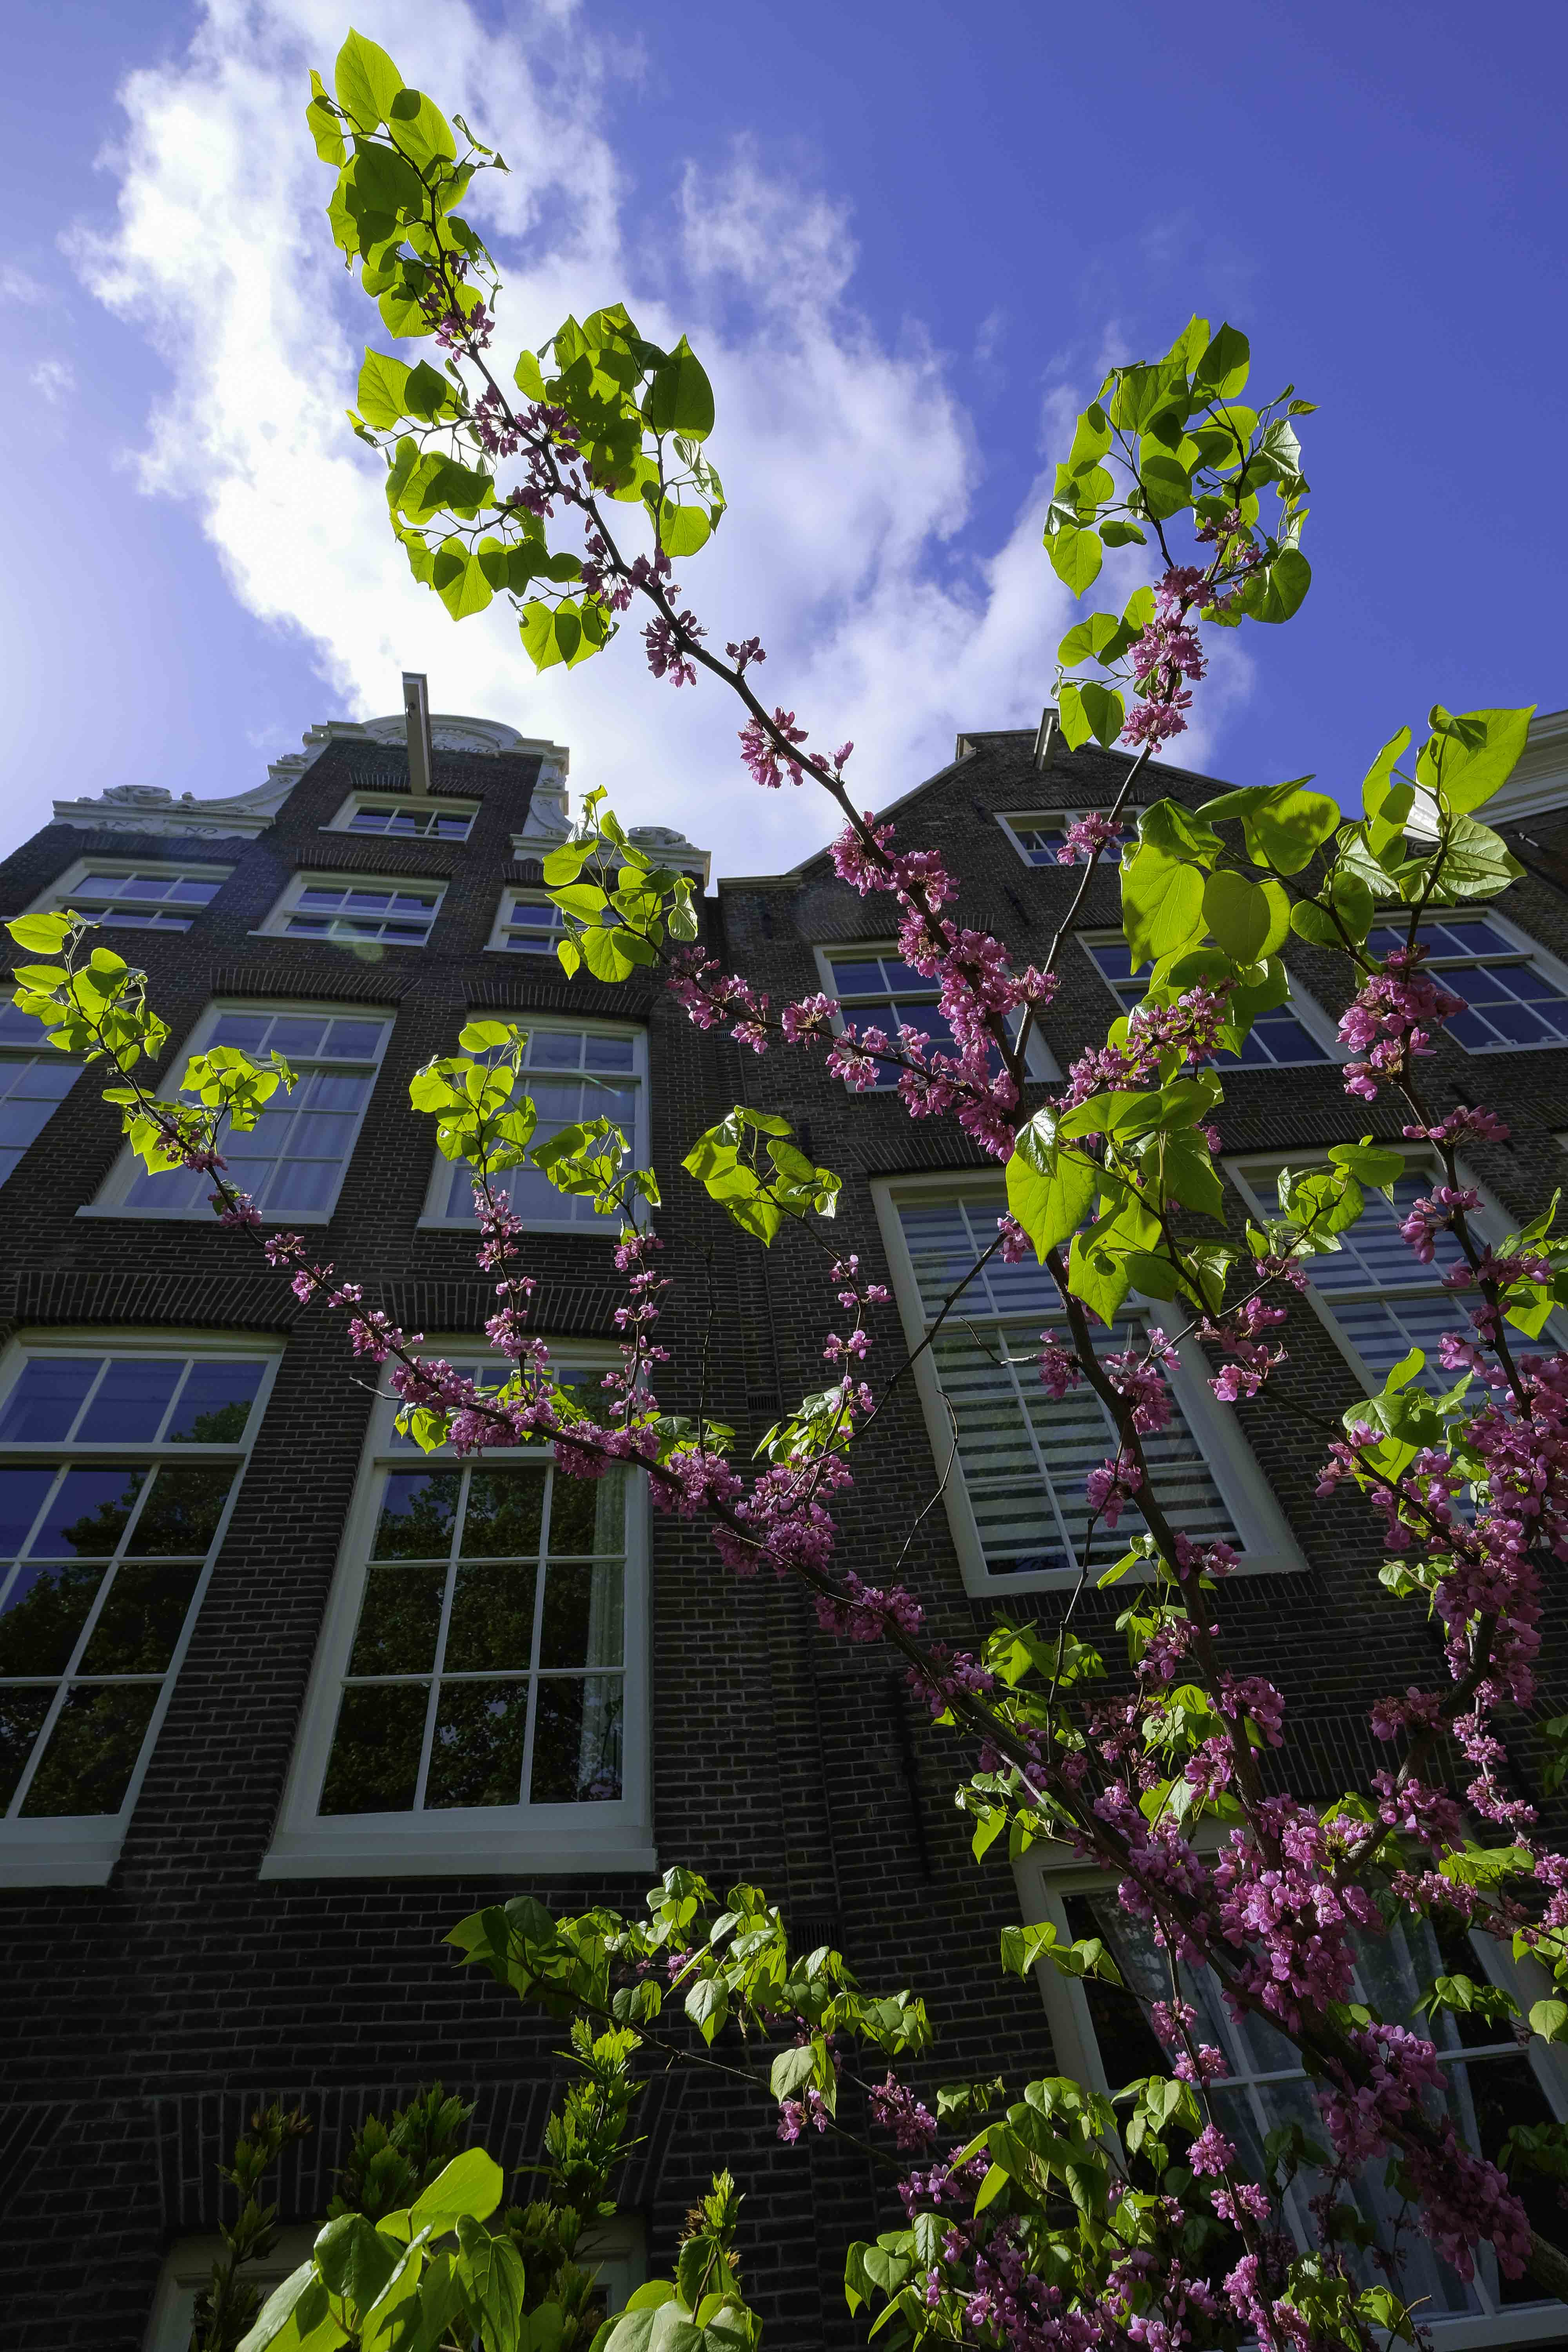 flowering-shrub-with-in-background-old-facades